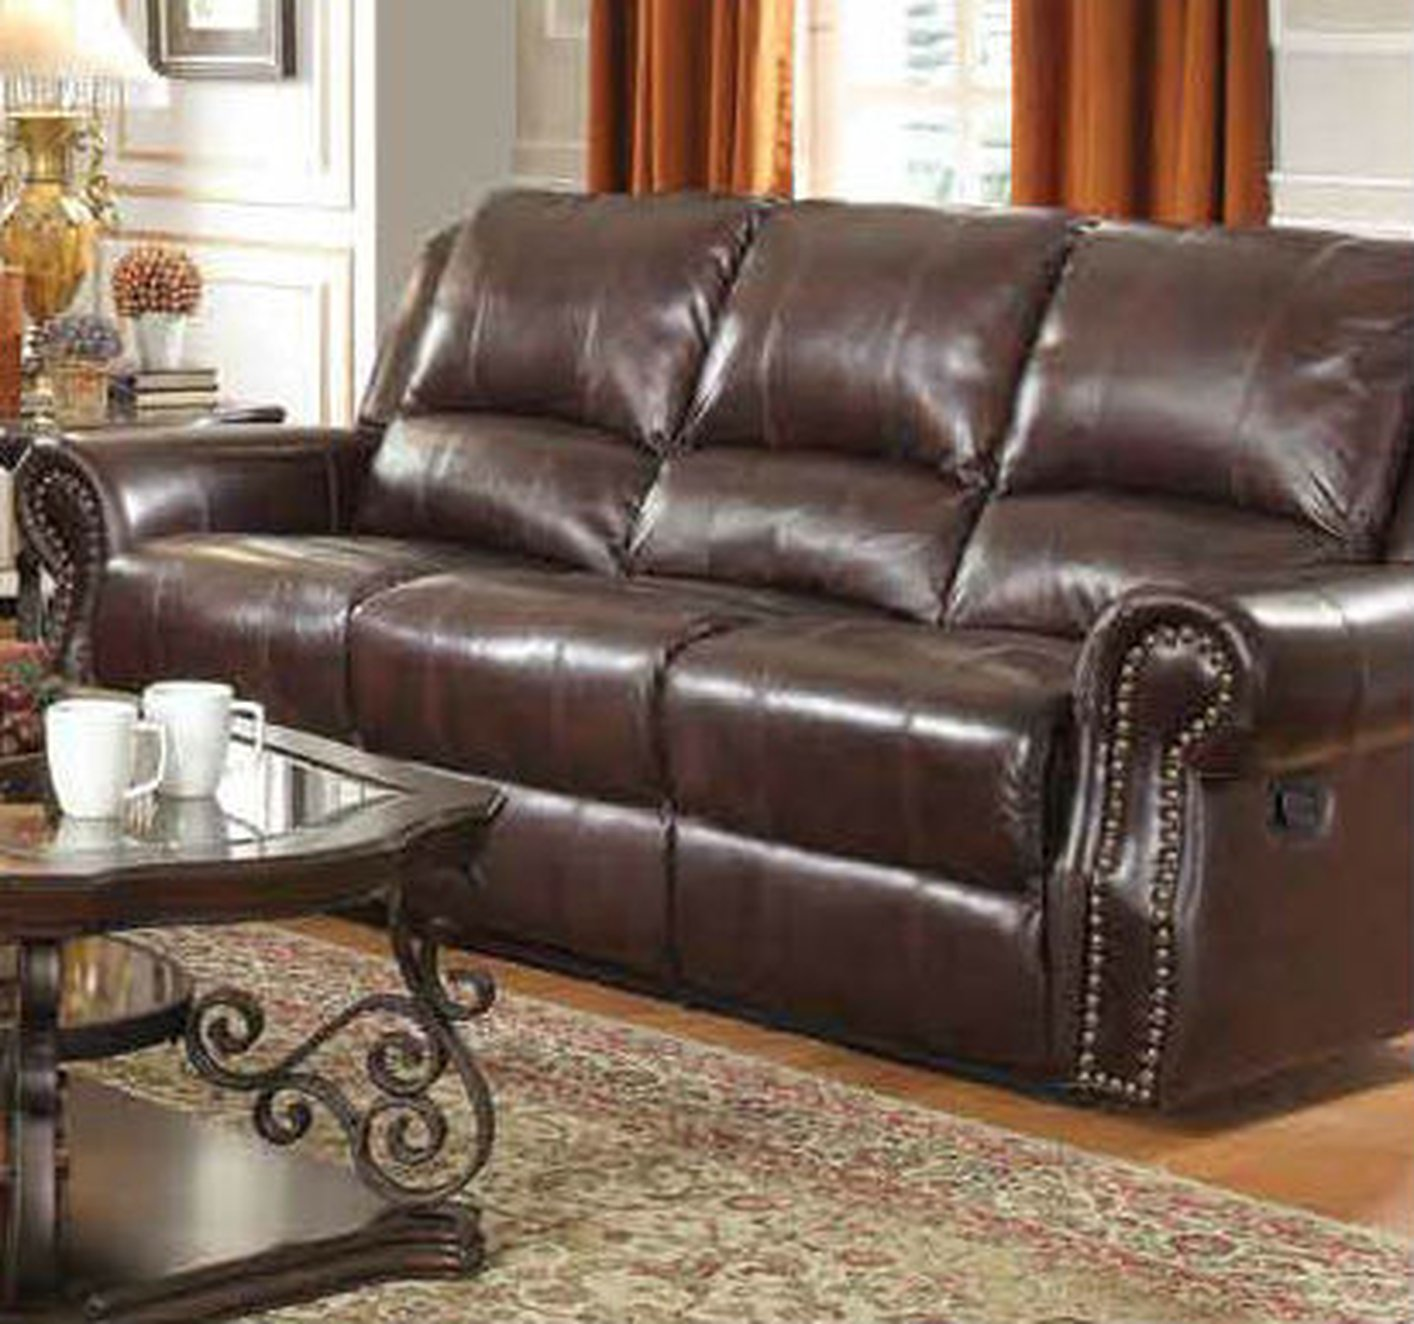 Brown Leather Power Reclining Sofa : brown leather reclining couch - islam-shia.org